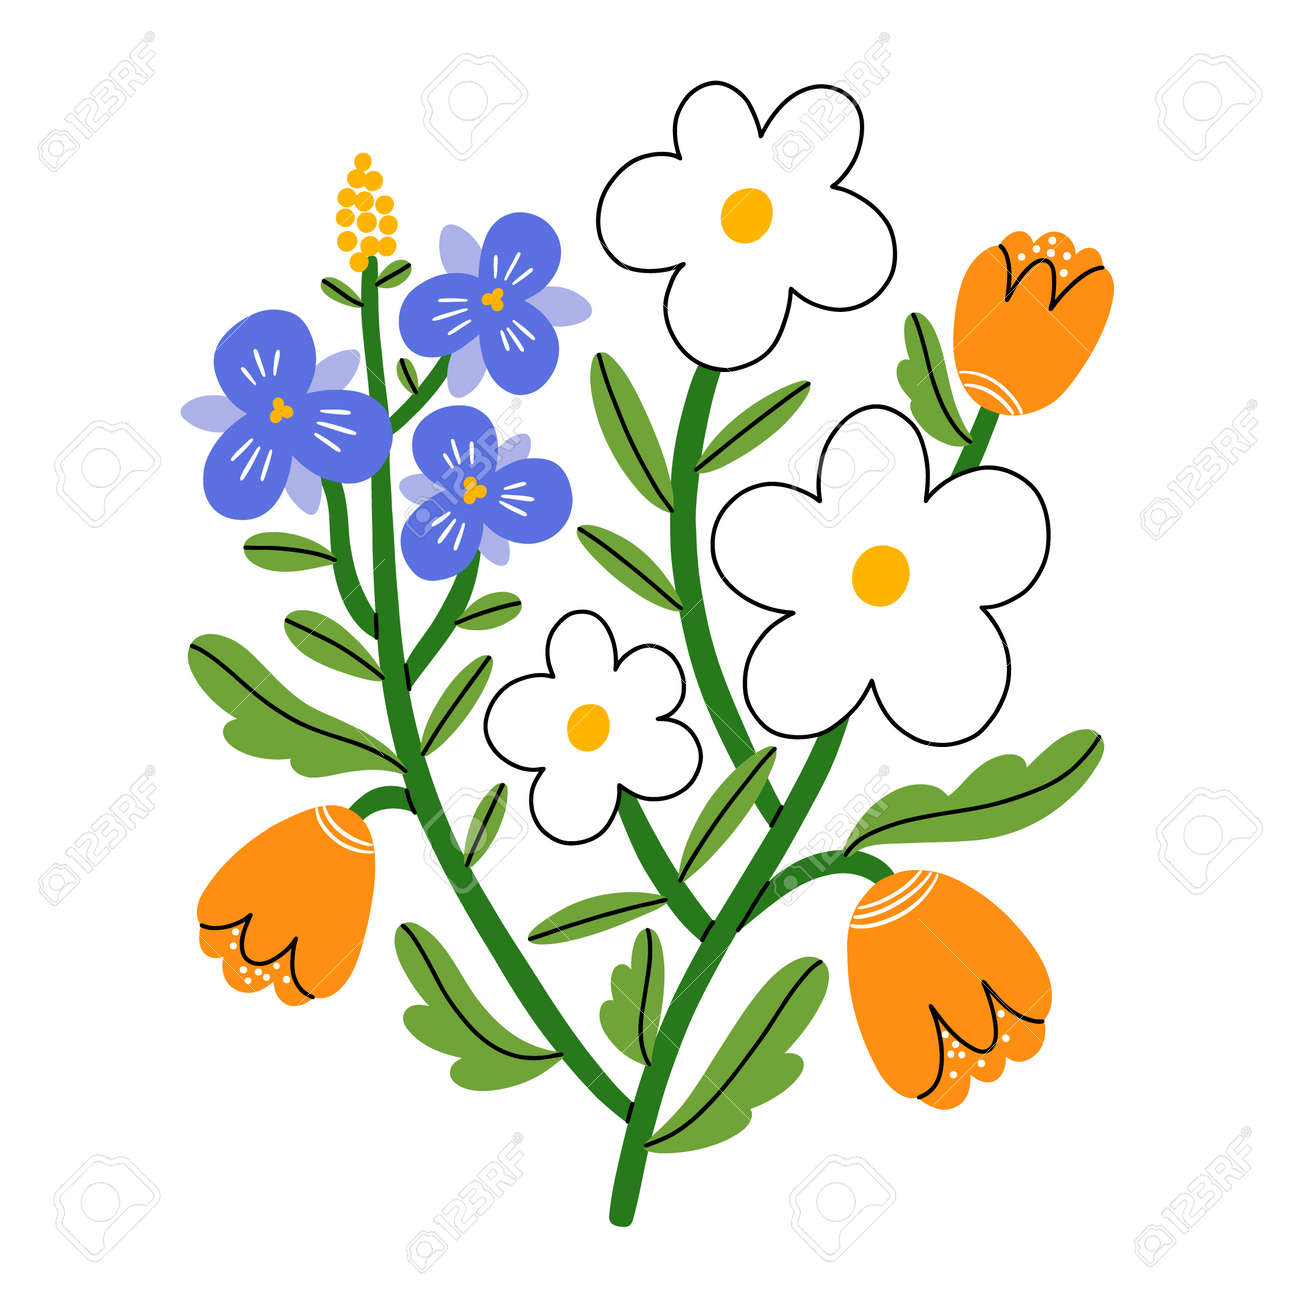 Violet pansy, daisy and tulip flower bouquet, vector illustration, isolated on white background - 162389499